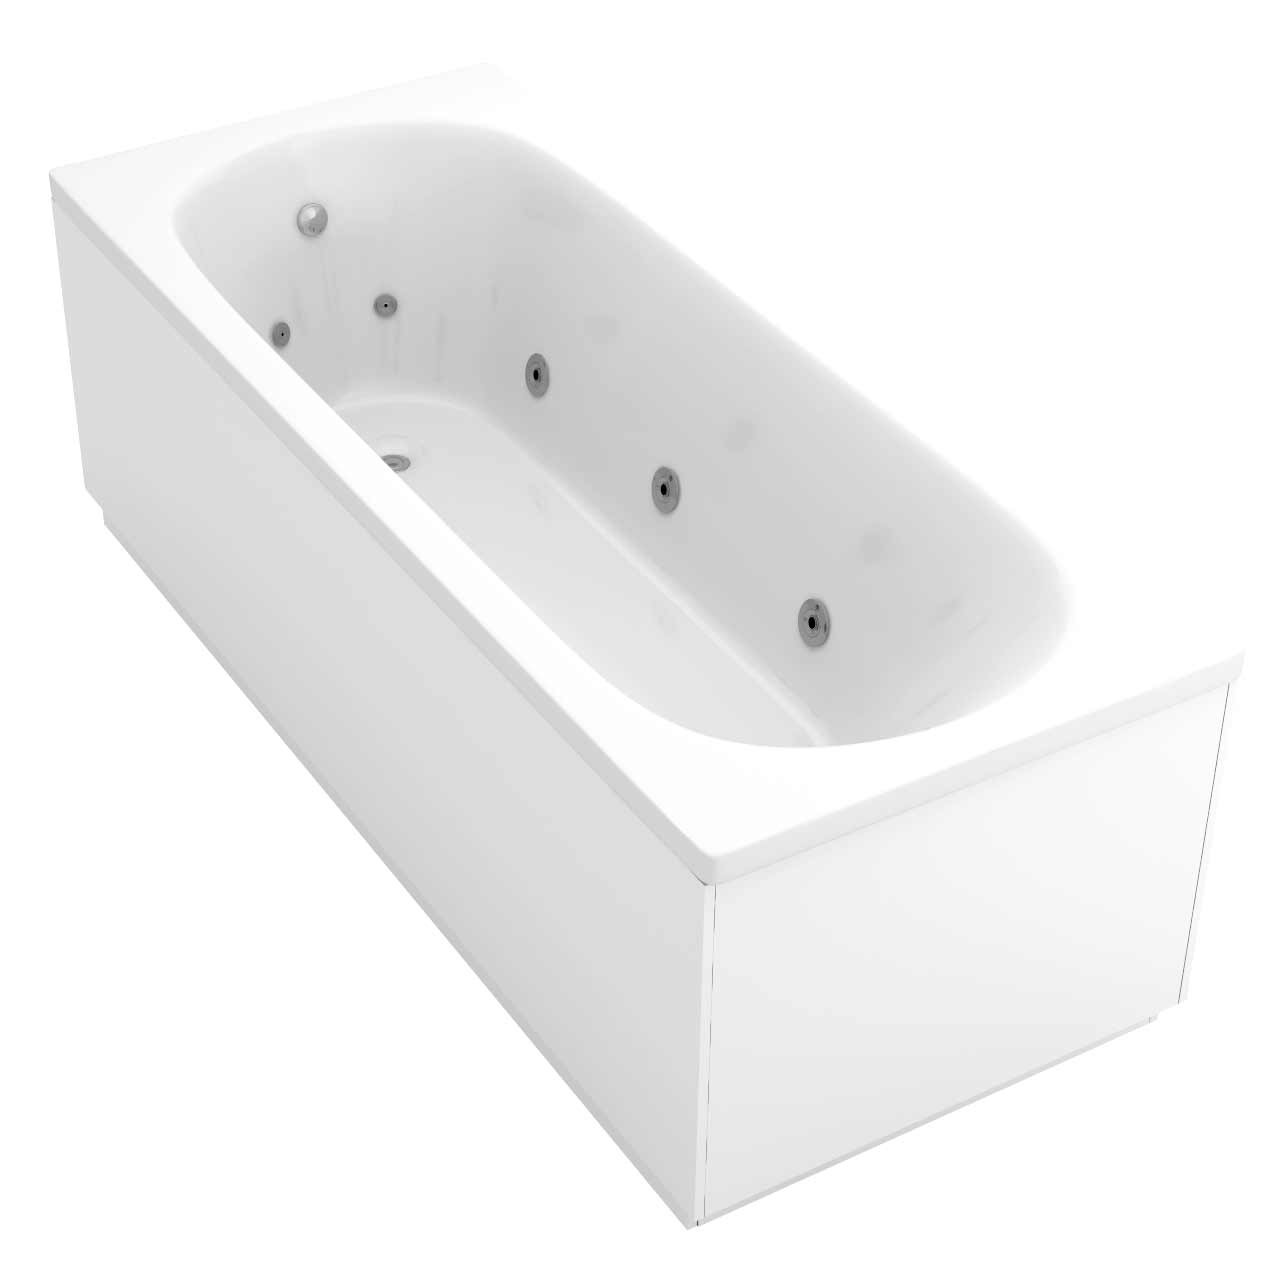 Compact End Tap 12 Jet Chrome Flat Jet Whirlpool Bath 1700x700